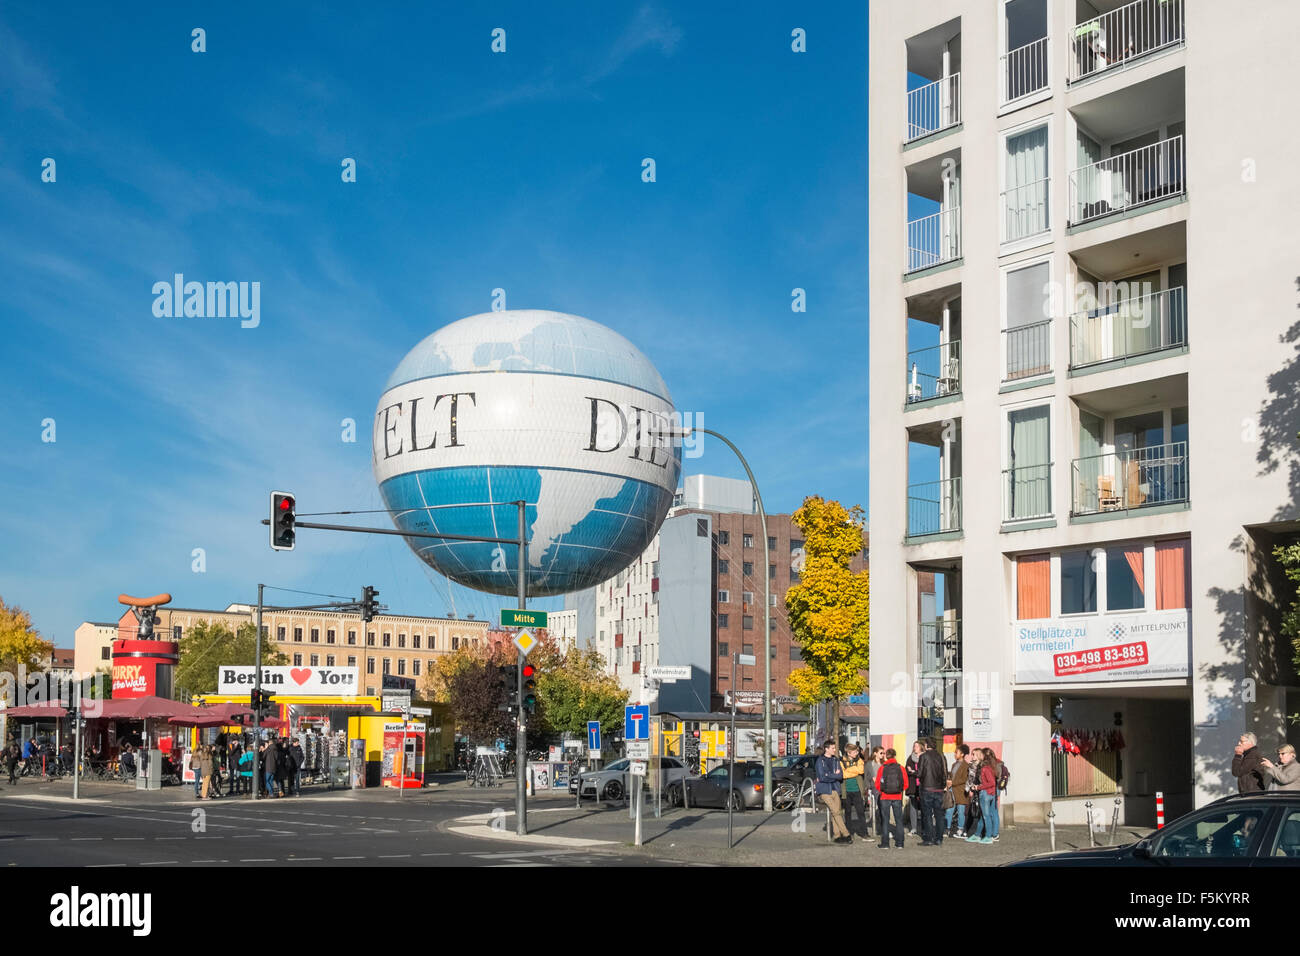 The Air Service Berlin Hi Flyer helium balloon, taking tourists up to 150 metres high for views over Germany's - Stock Image